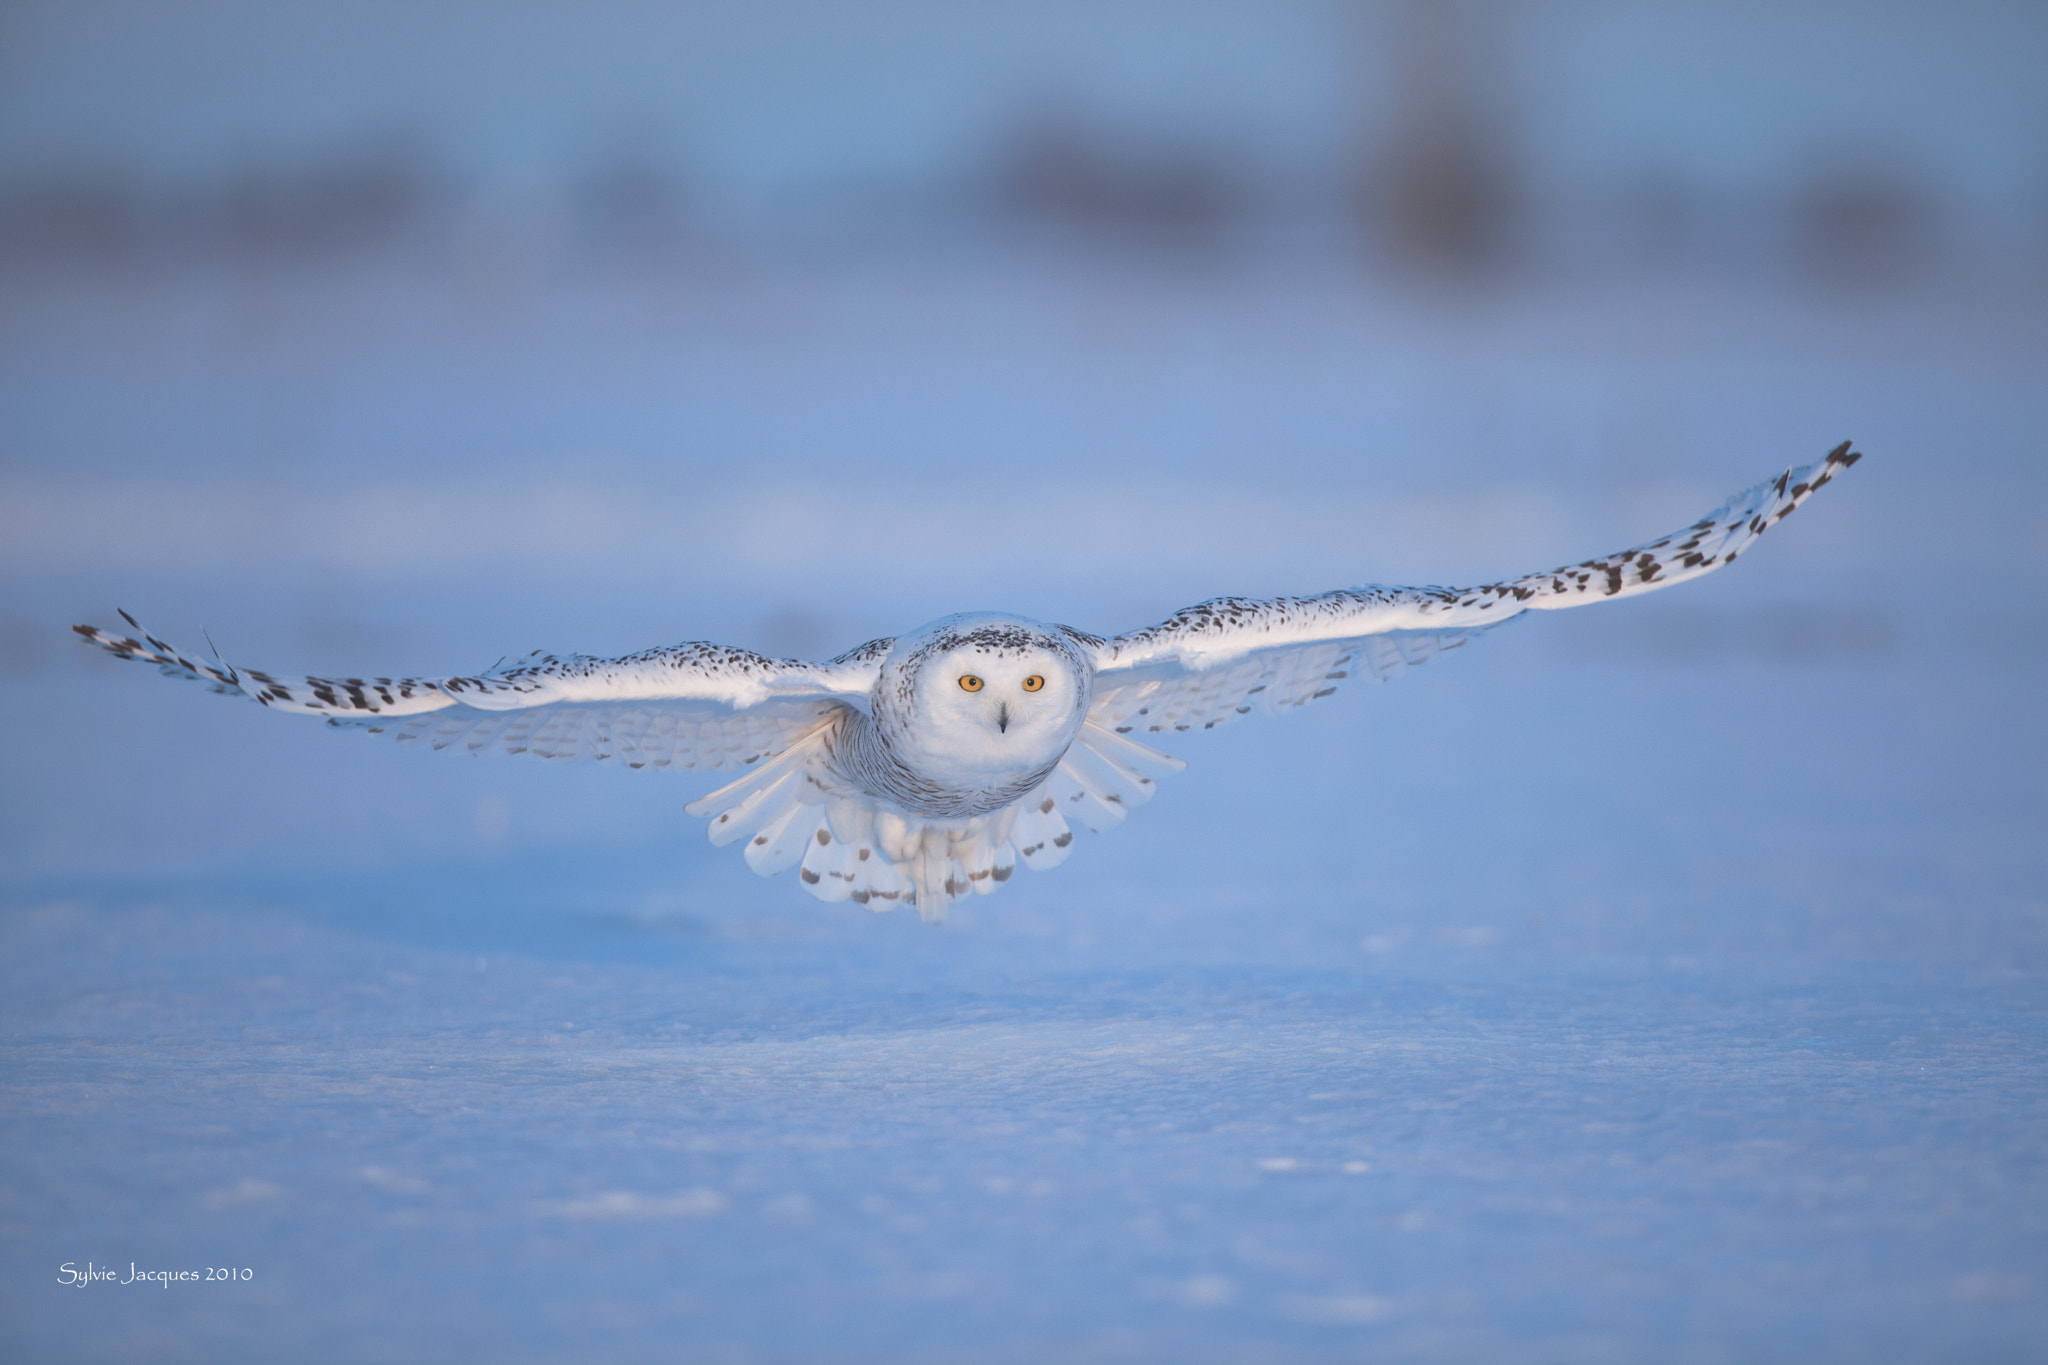 Photograph Snowy owl / Harfang des neiges by Sylvie Jacques on 500px